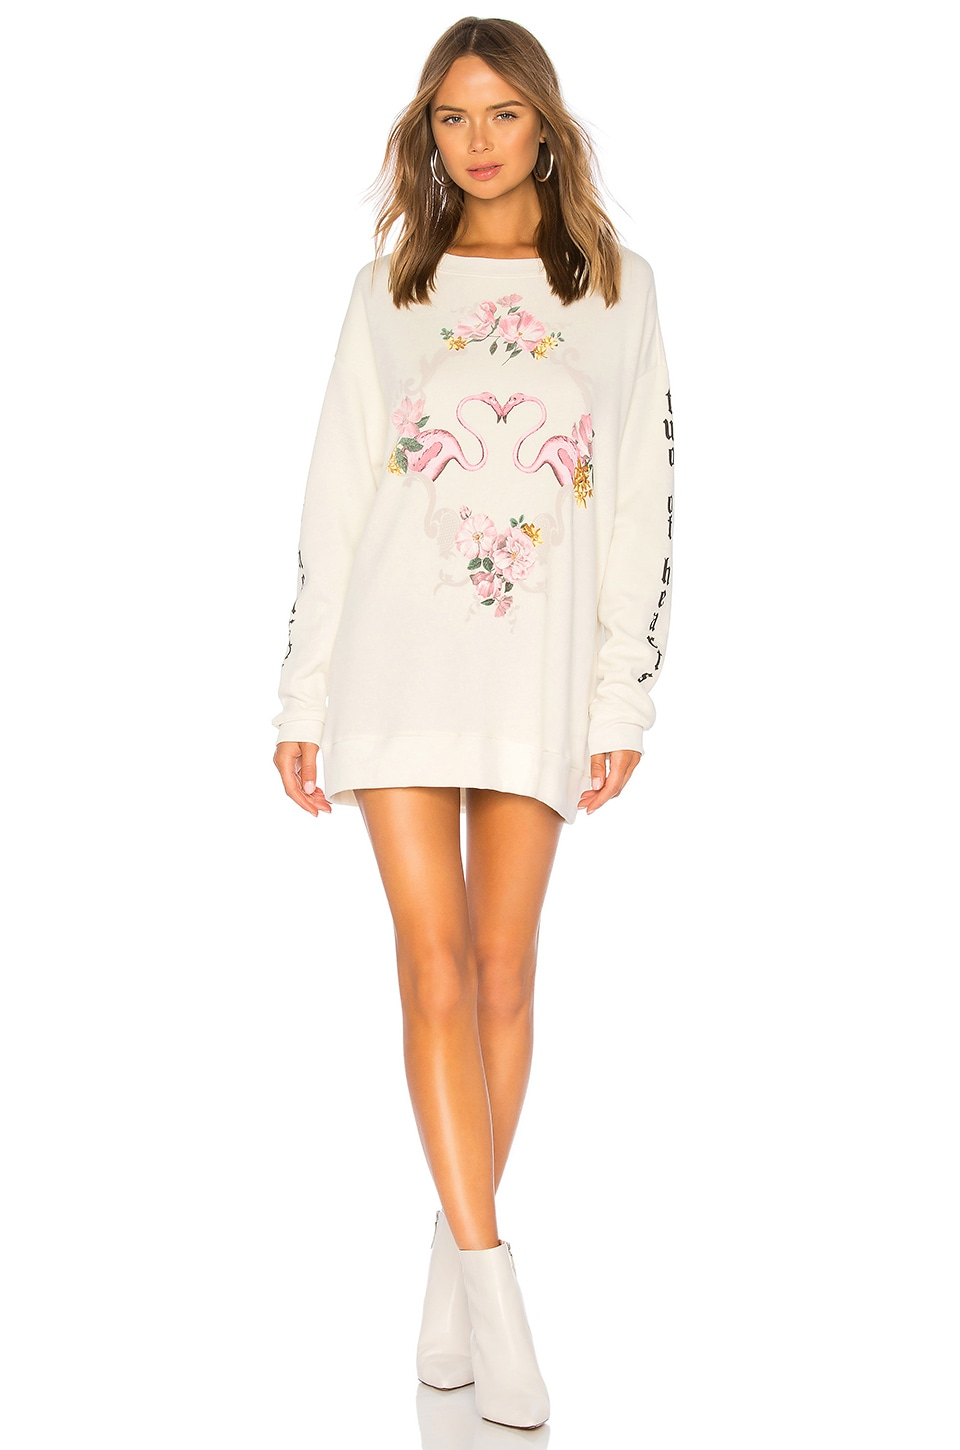 WILDFOX COUTURE Two Of Hearts Roadtrip Sweatshirt in Cream